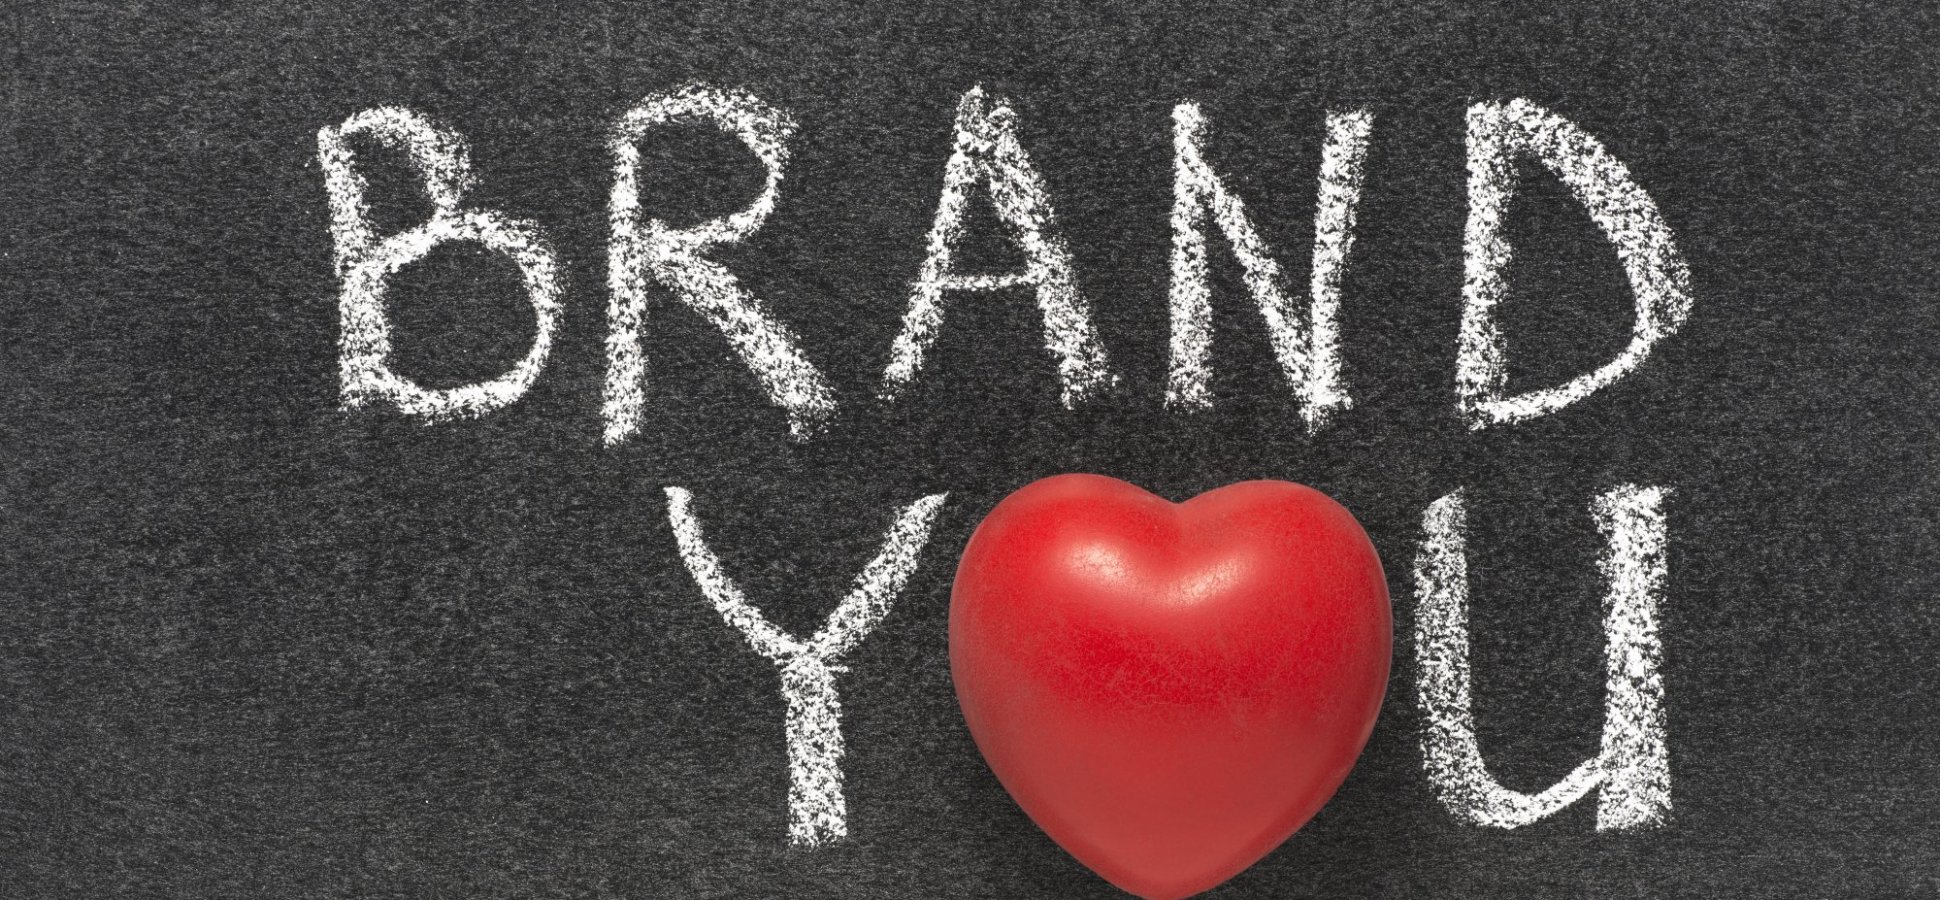 4 Keys to Building an Authentic Brand Customers Can Fall in Love With Again and Again